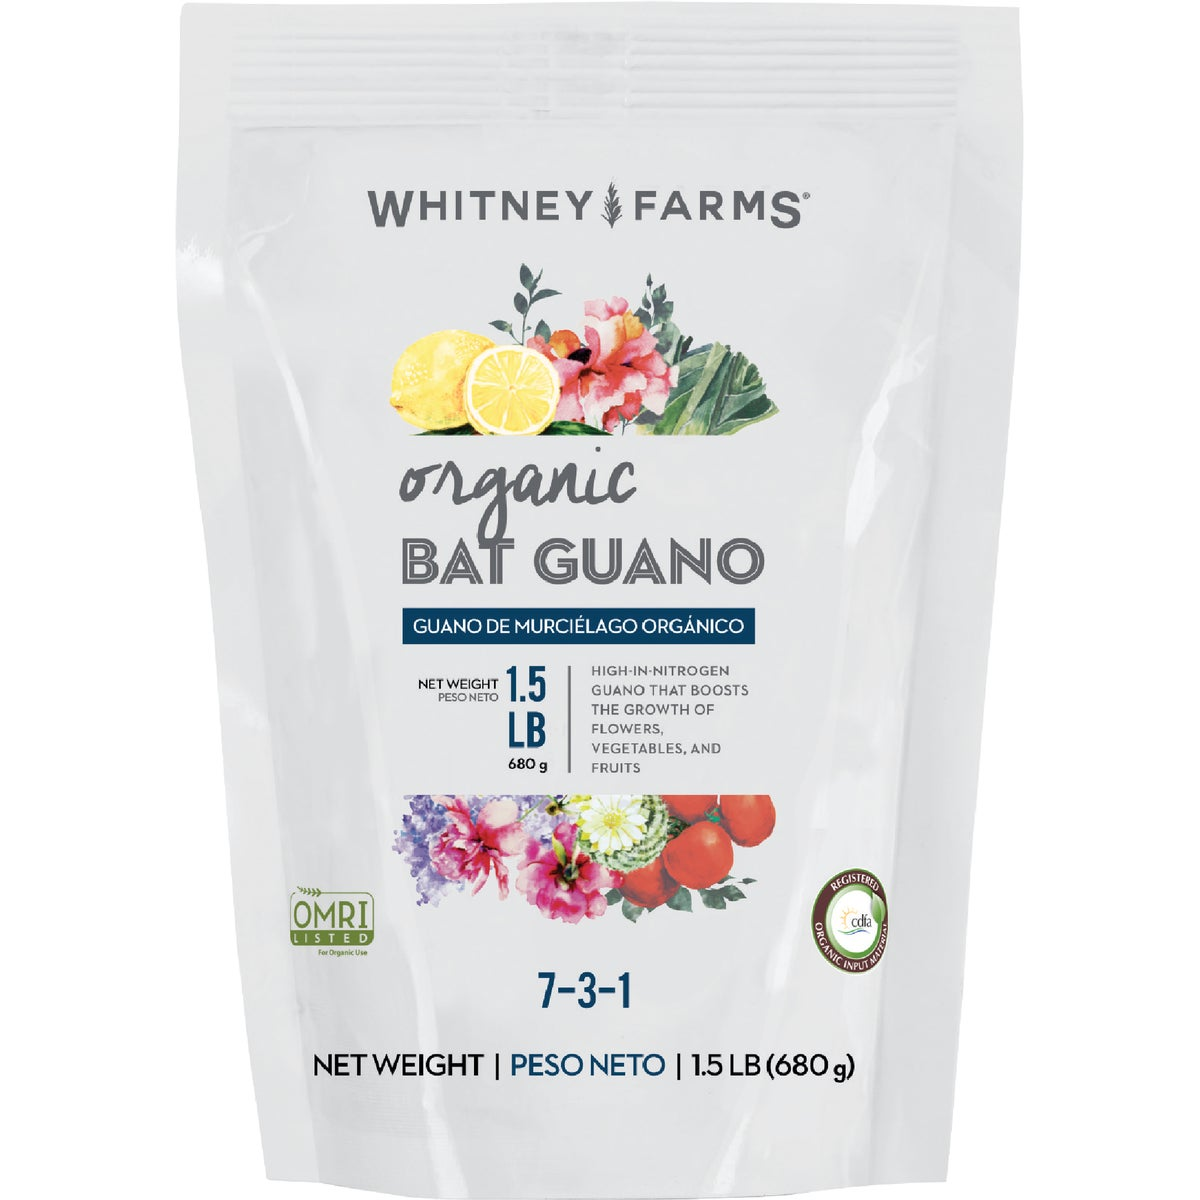 1.5lb Wf Bat Guano - 109161 by Scotts Company